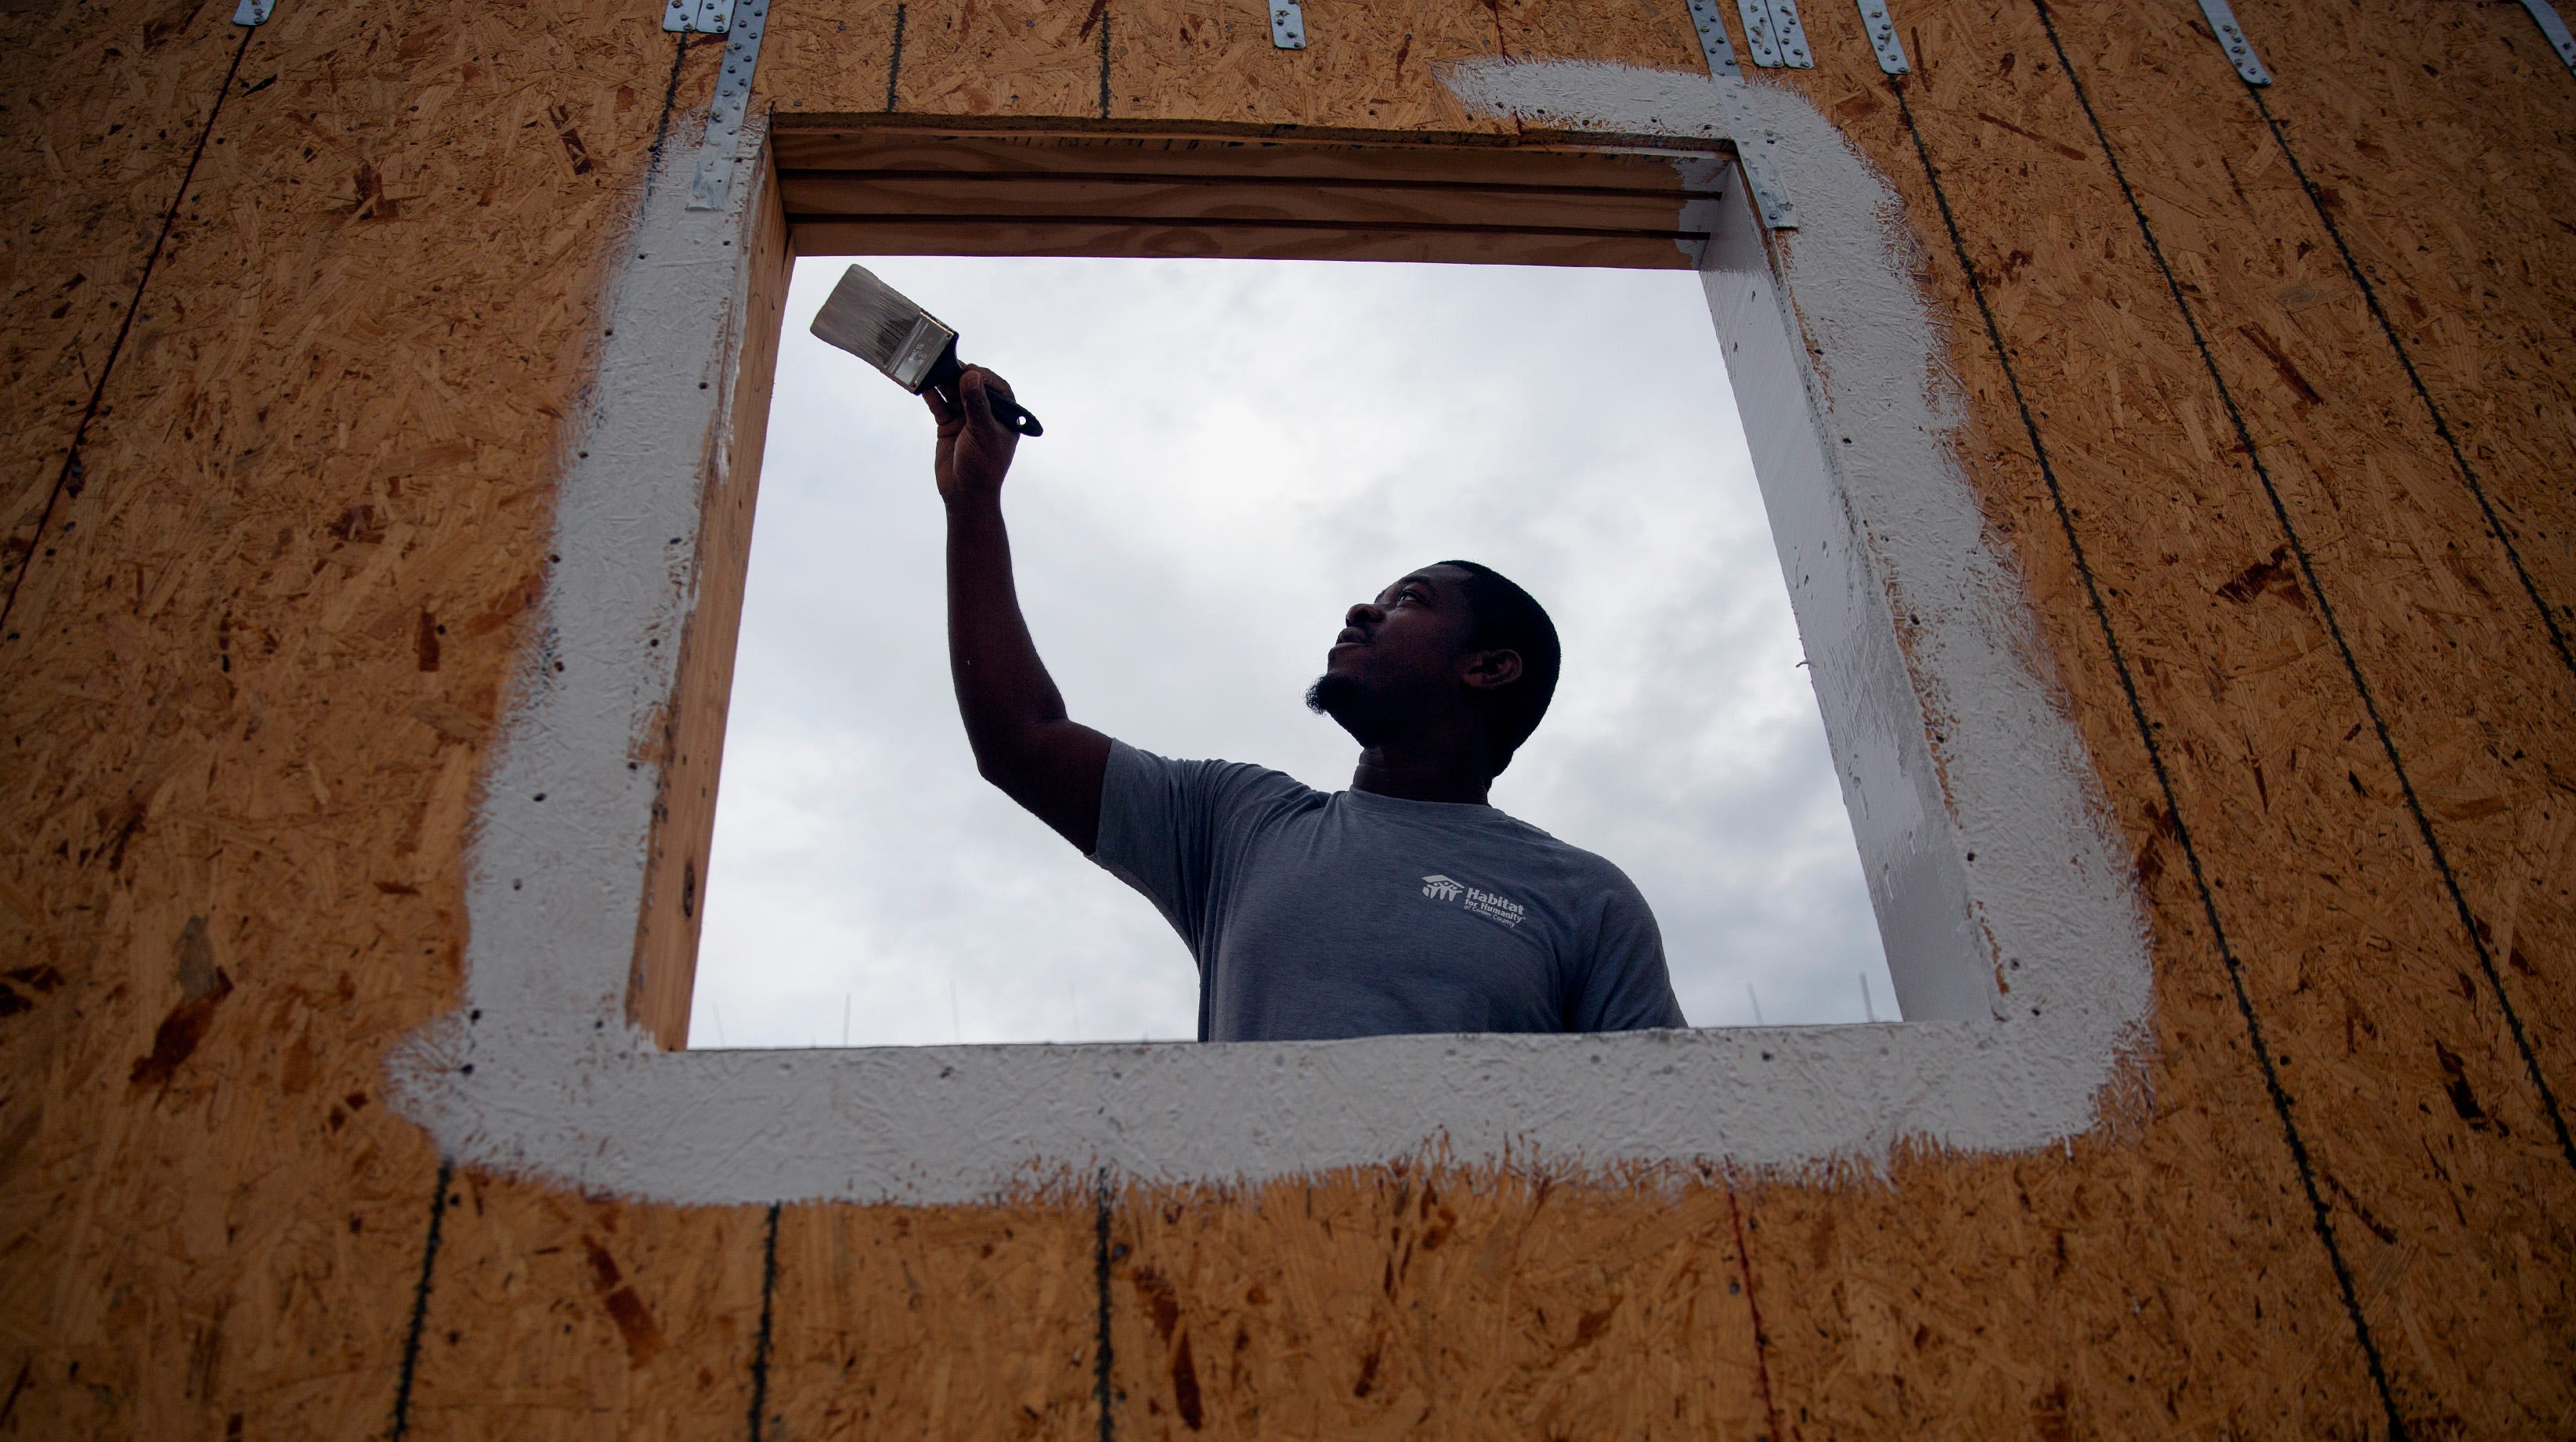 Billy With, a site supervisor for Habitat for Humanity of Collier County, applies a protective coating on a window,  Saturday, Jan. 5, 2019, in the Dockside neighborhood southeast of Naples.